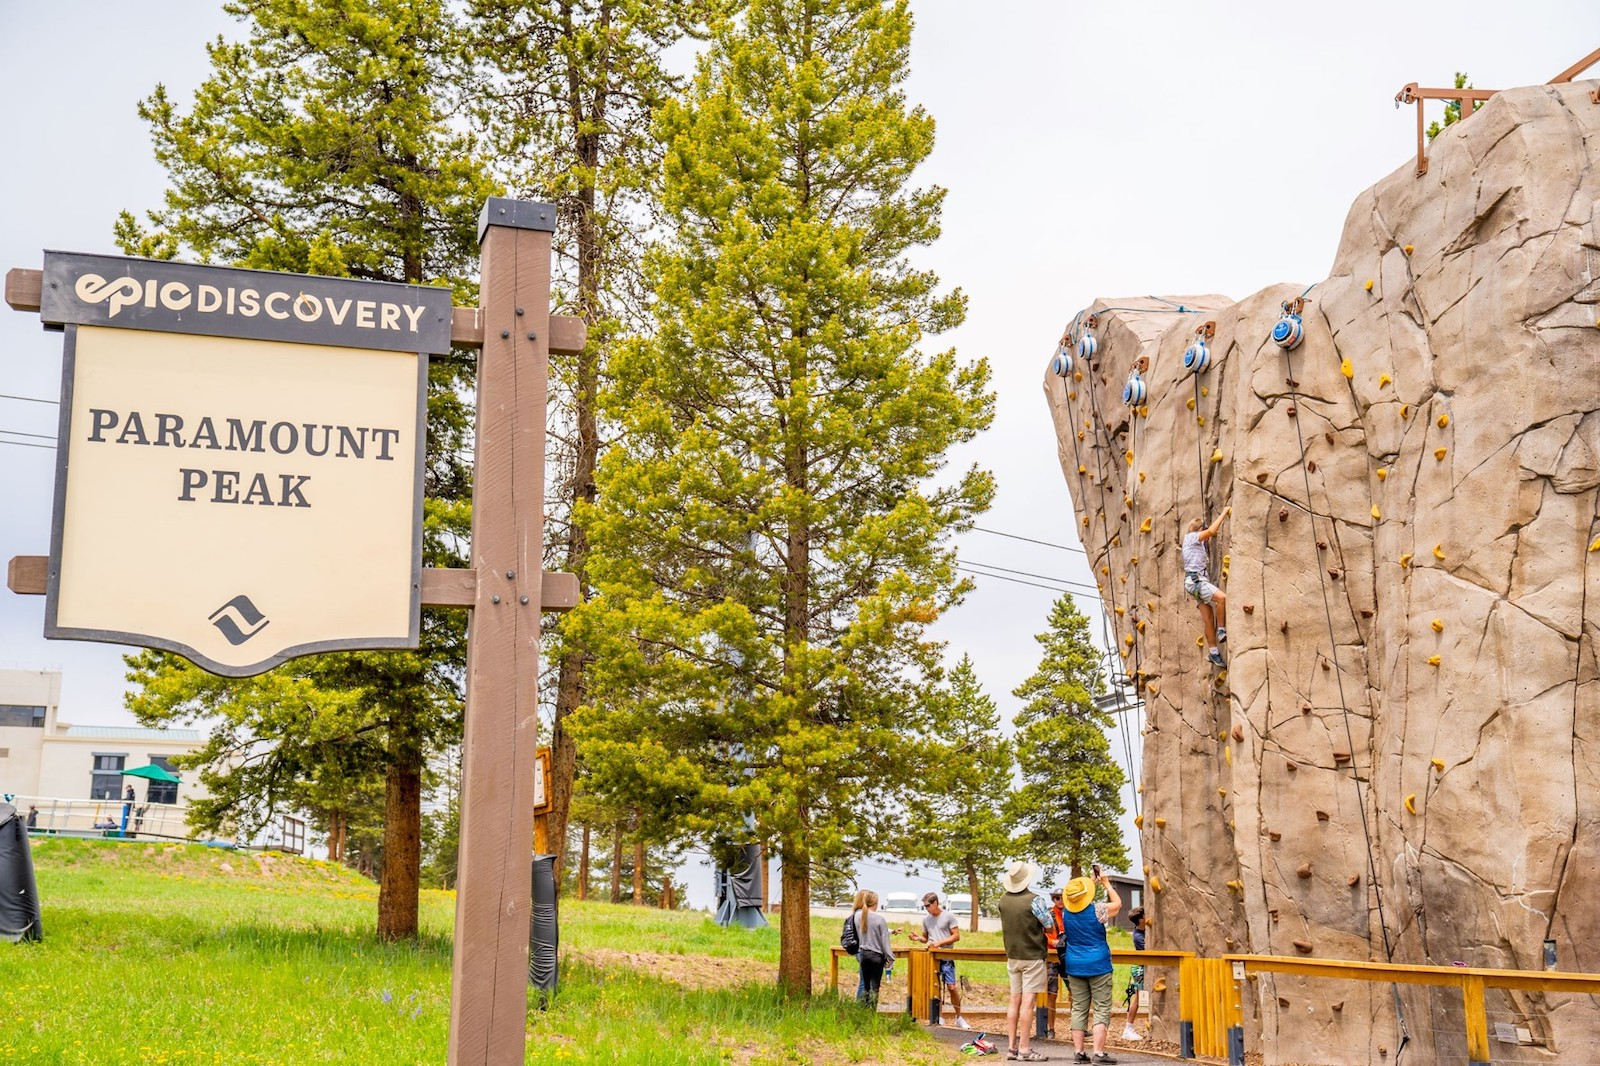 Image of the Paramount Peak climbing wall at Epic Discovery in Vail, Colorado